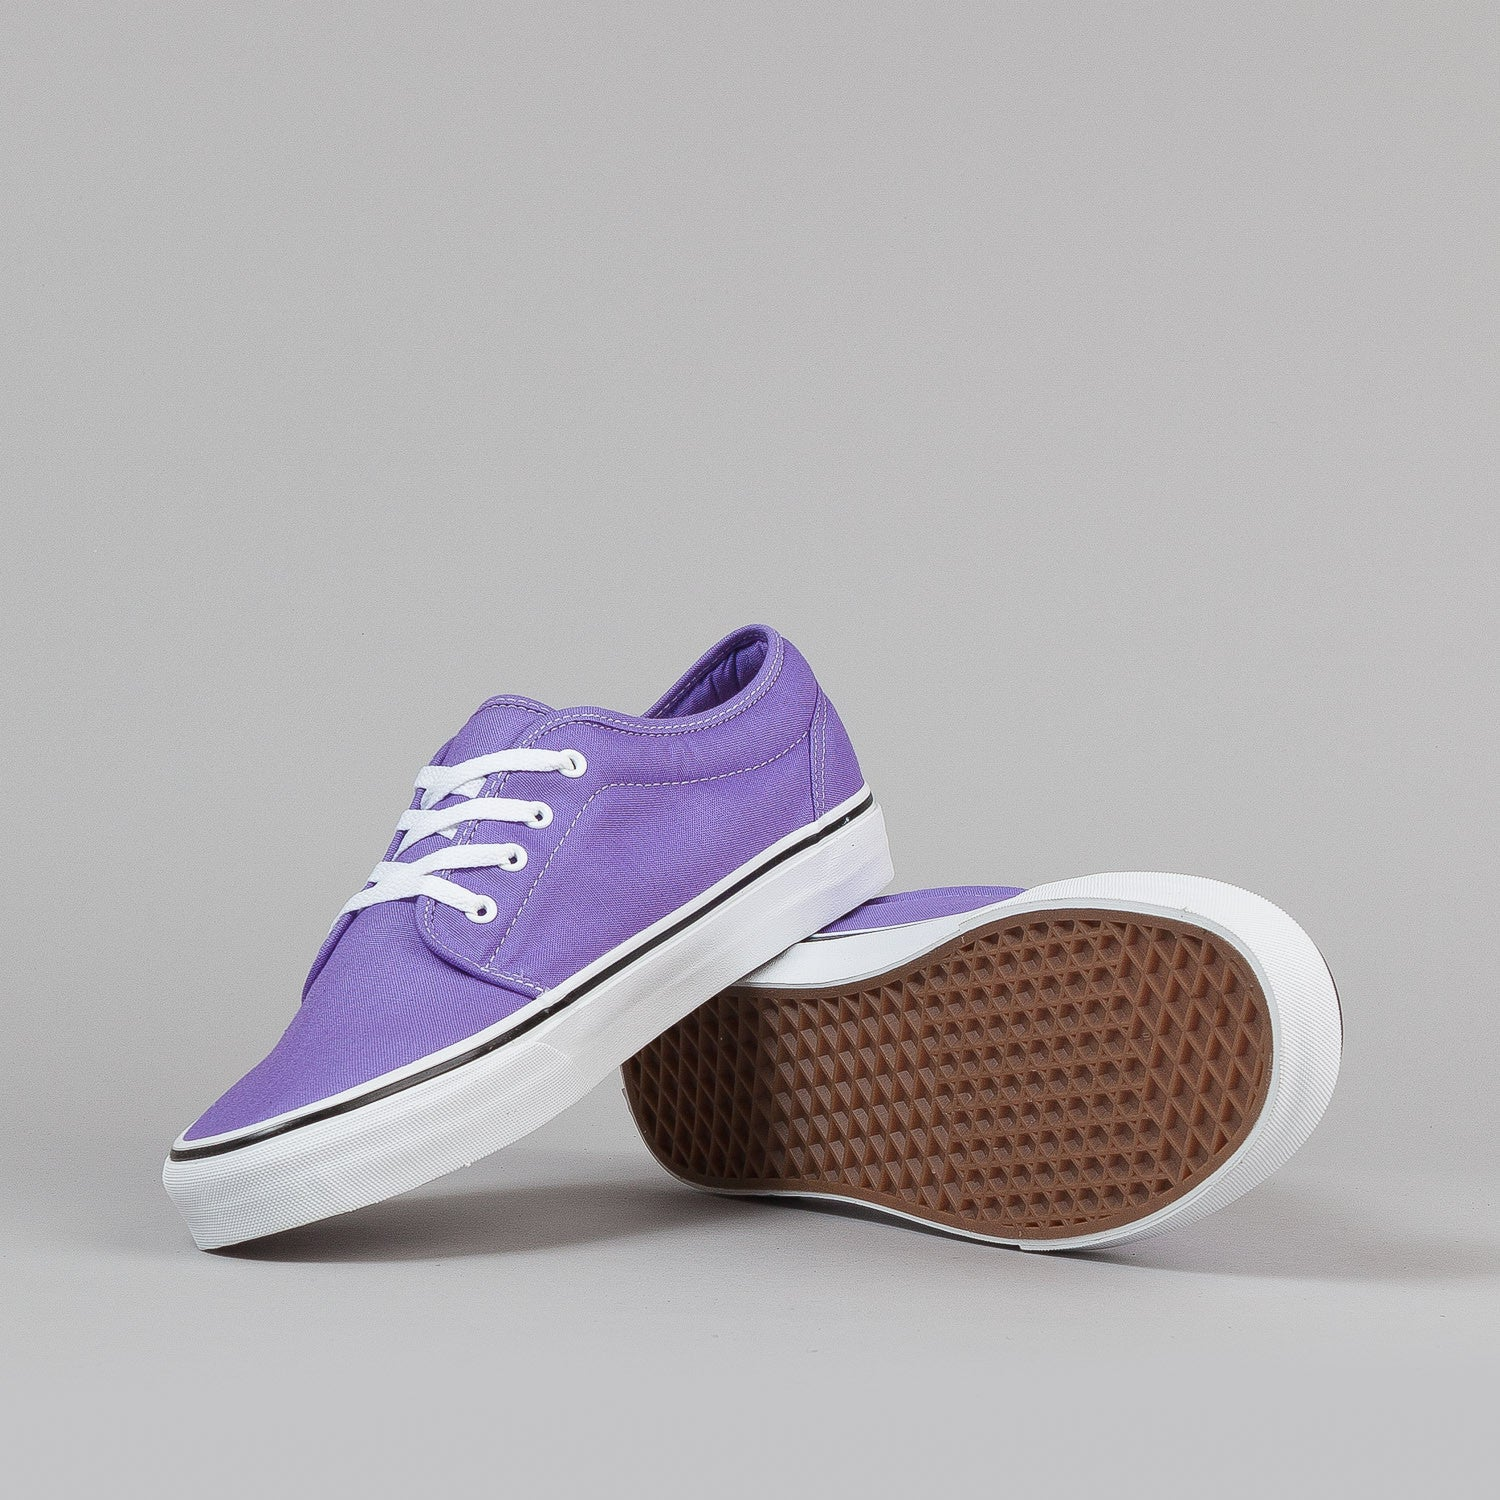 Vans 106 Vulc Shoes - Paisley Purple / True White